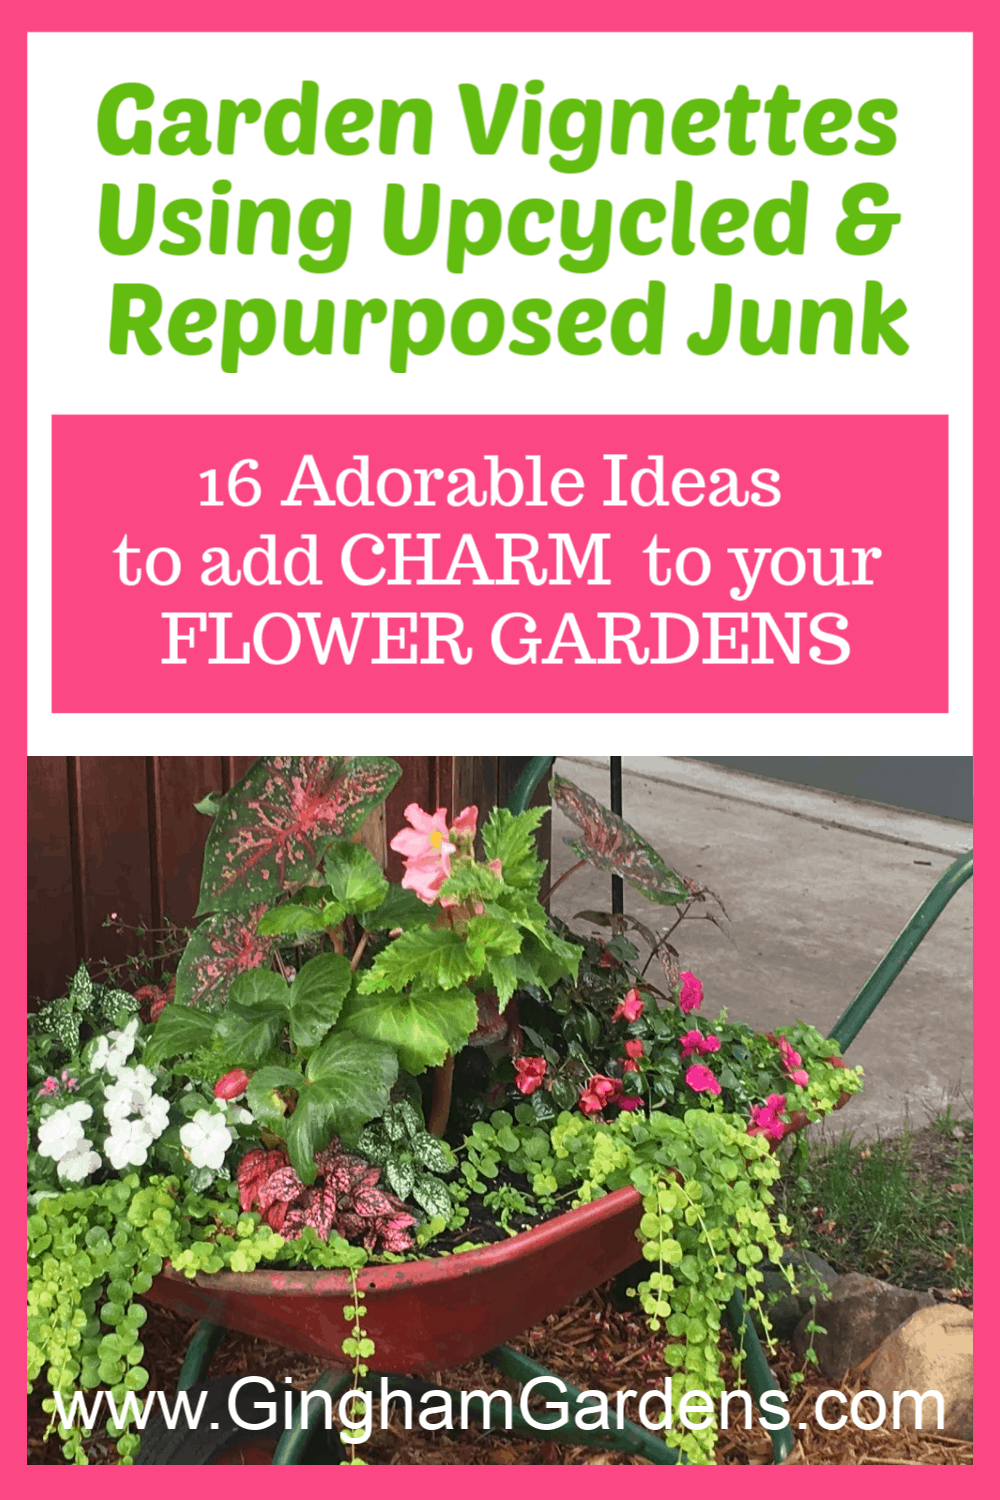 Image of Wheelbarrow as a Planter with Text Overlay - Garden Vignettes Using Upcycled and Repurposed Junk